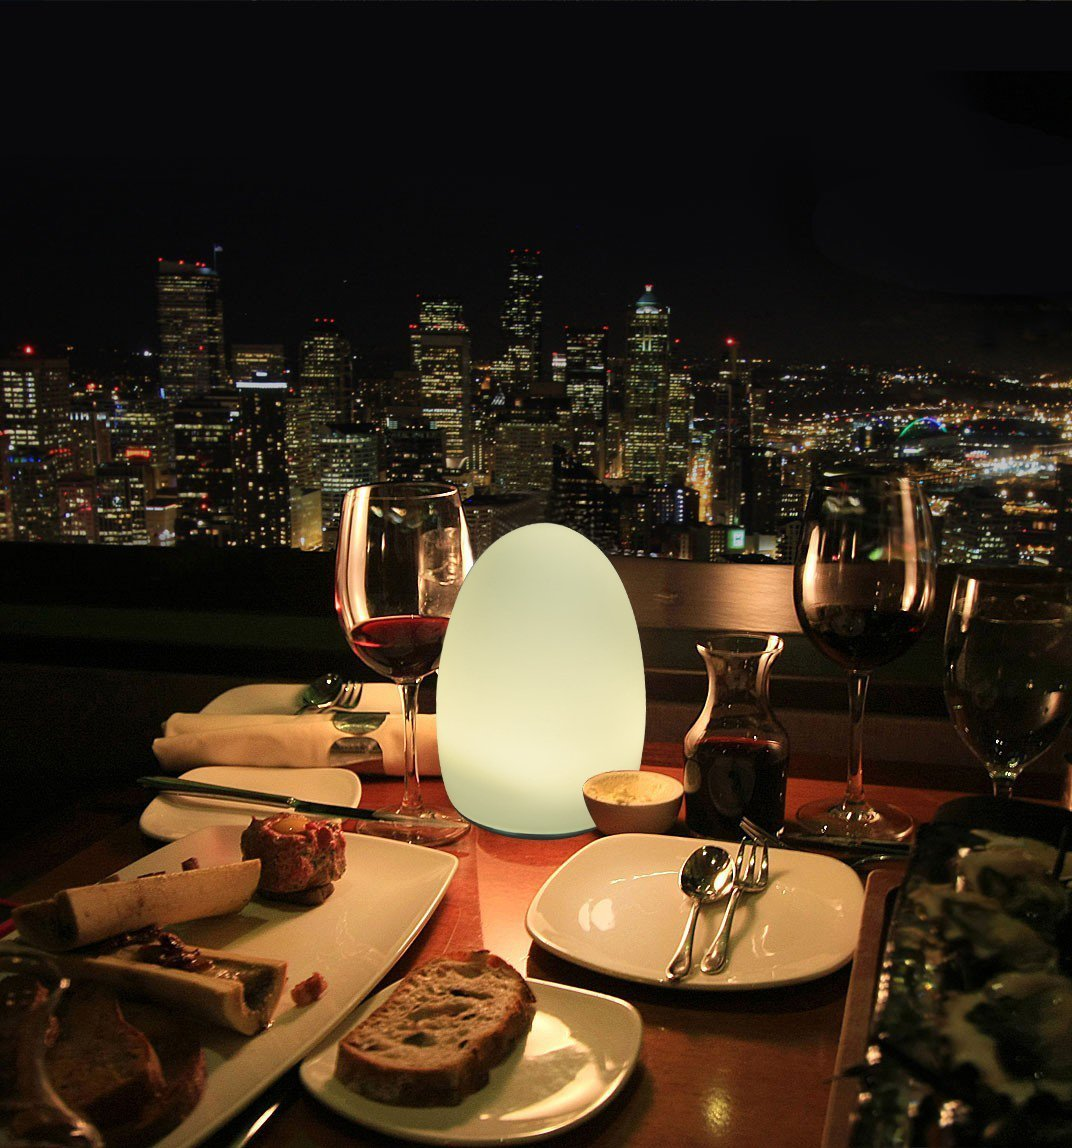 HERO-LED TB-EG-01 Restaurant Table Lighting, Wireless Induction Rechargeable LED Cordless Table Lamps with Remote Timer Controller, Set of 2, Egg 01 by HERO-LED (Image #5)